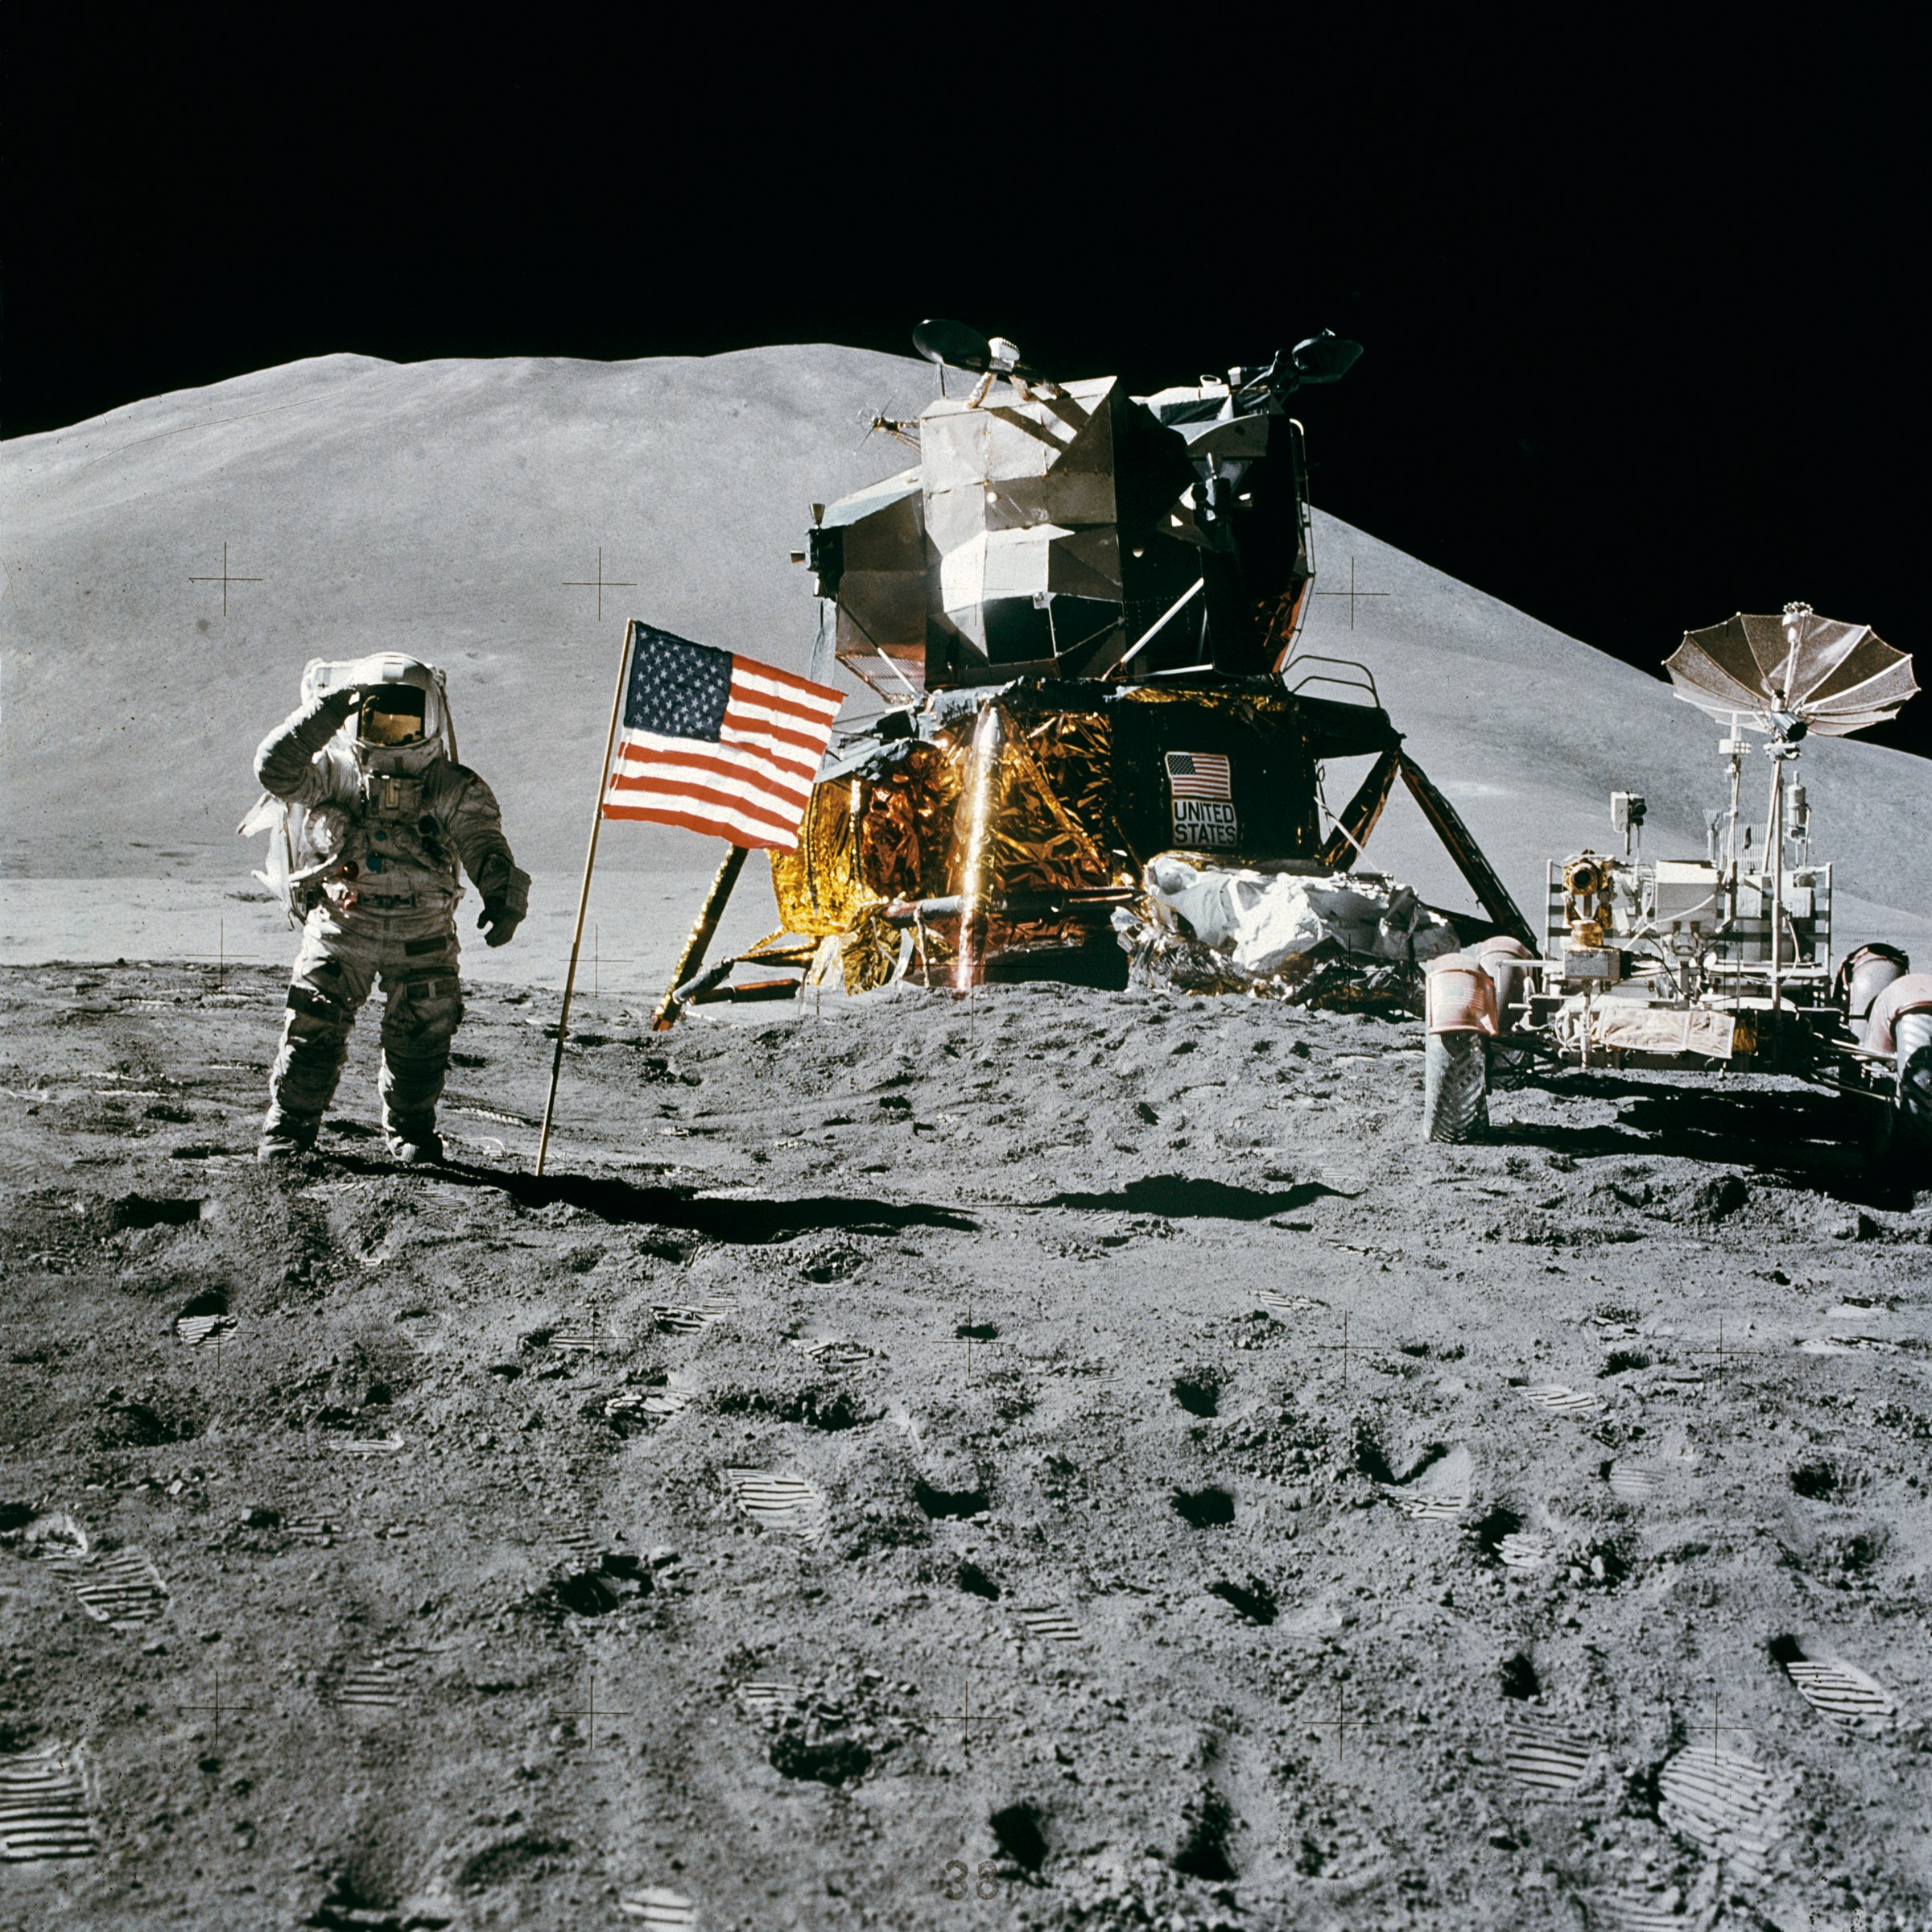 apollo 11 moonwalk - photo #25